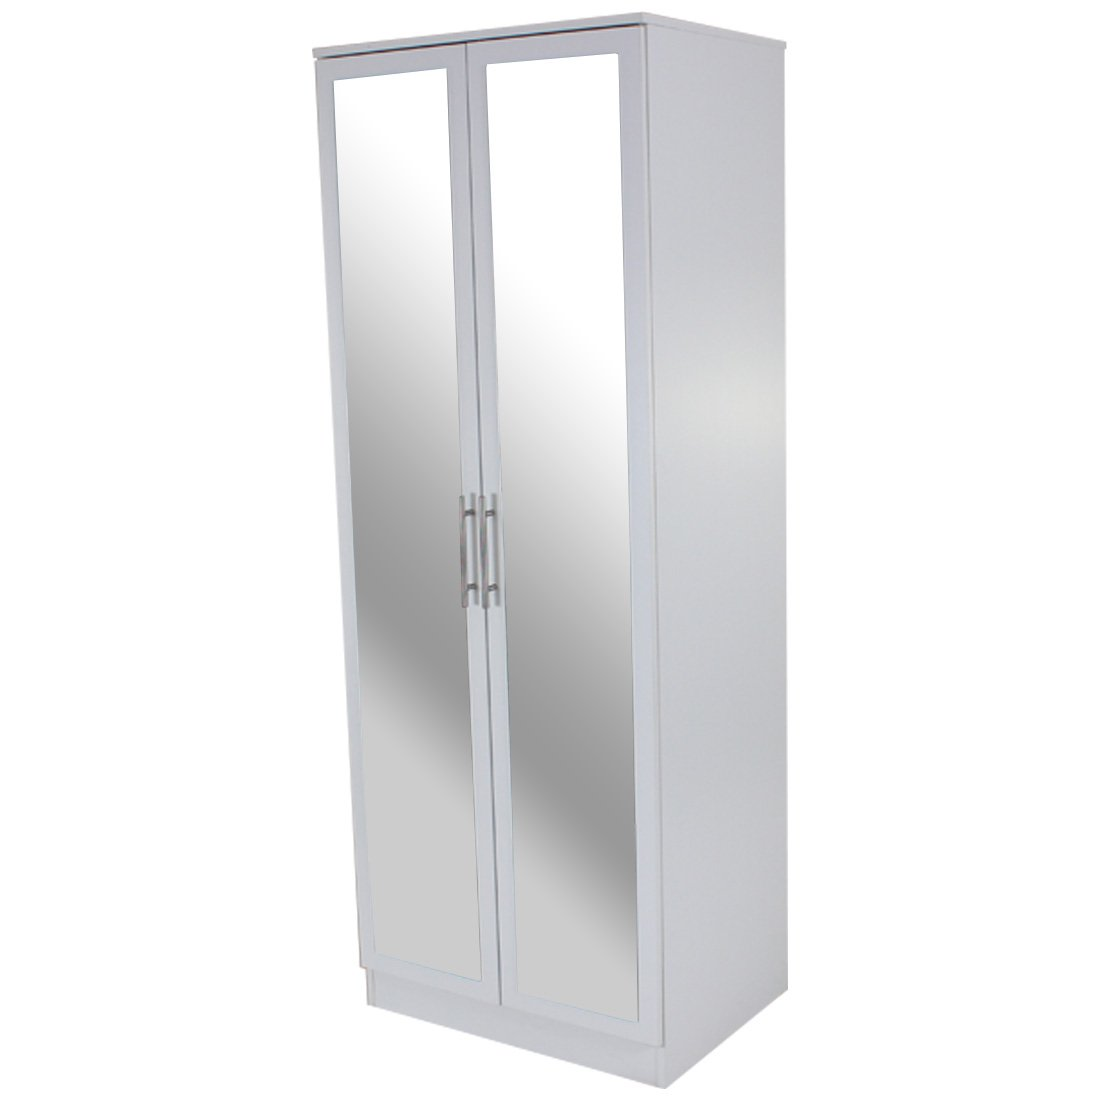 Devoted2Home Humber Bedroom Furniture with 1-Door Mirrored Corner Wardrobe, Wood, White, 64.7 x 64.7 x 180 cm AA510703HUM